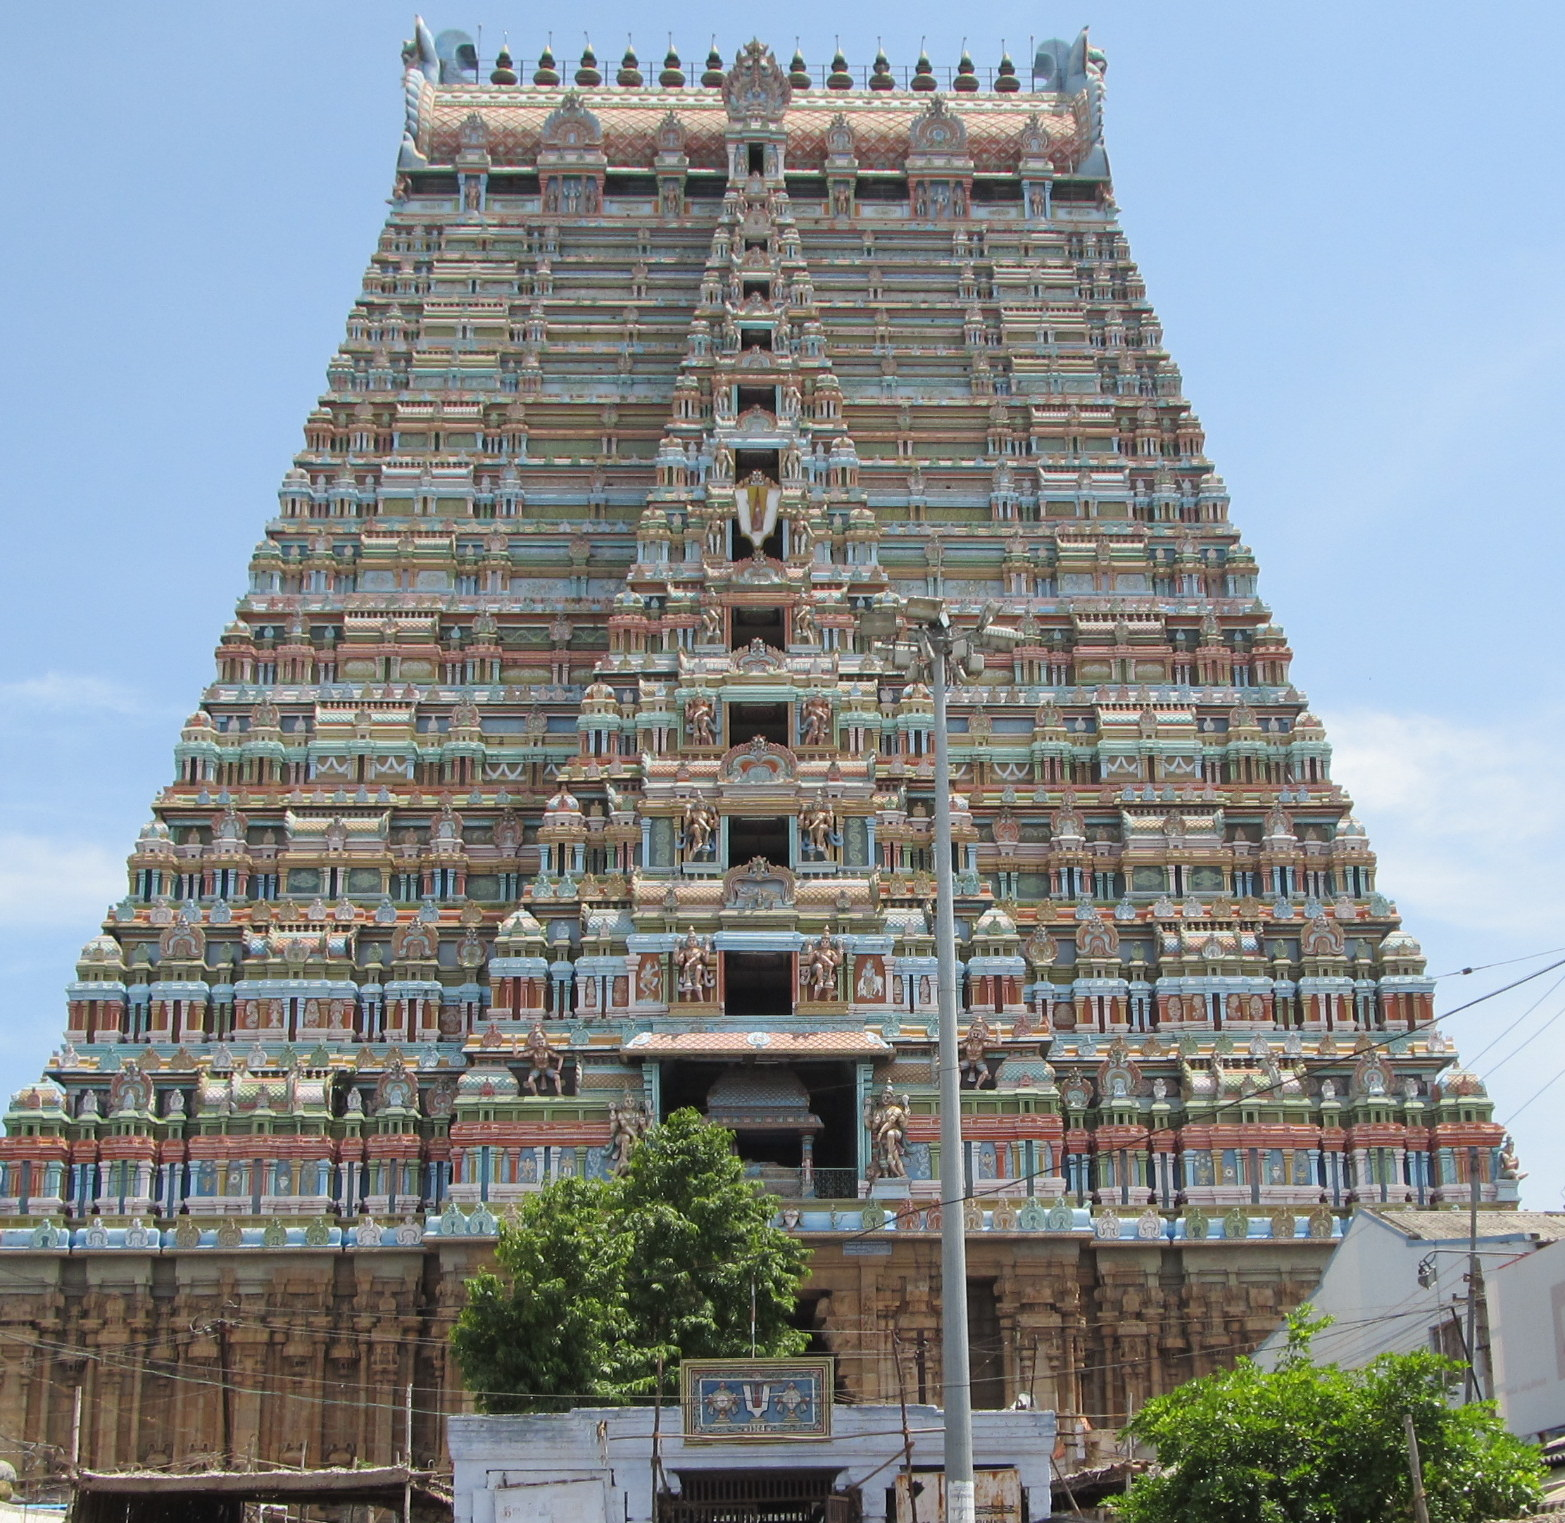 http://www.templefolks.com/products/bimages/Sri-Ranganathaswamy-Temple-4-10342.jpg